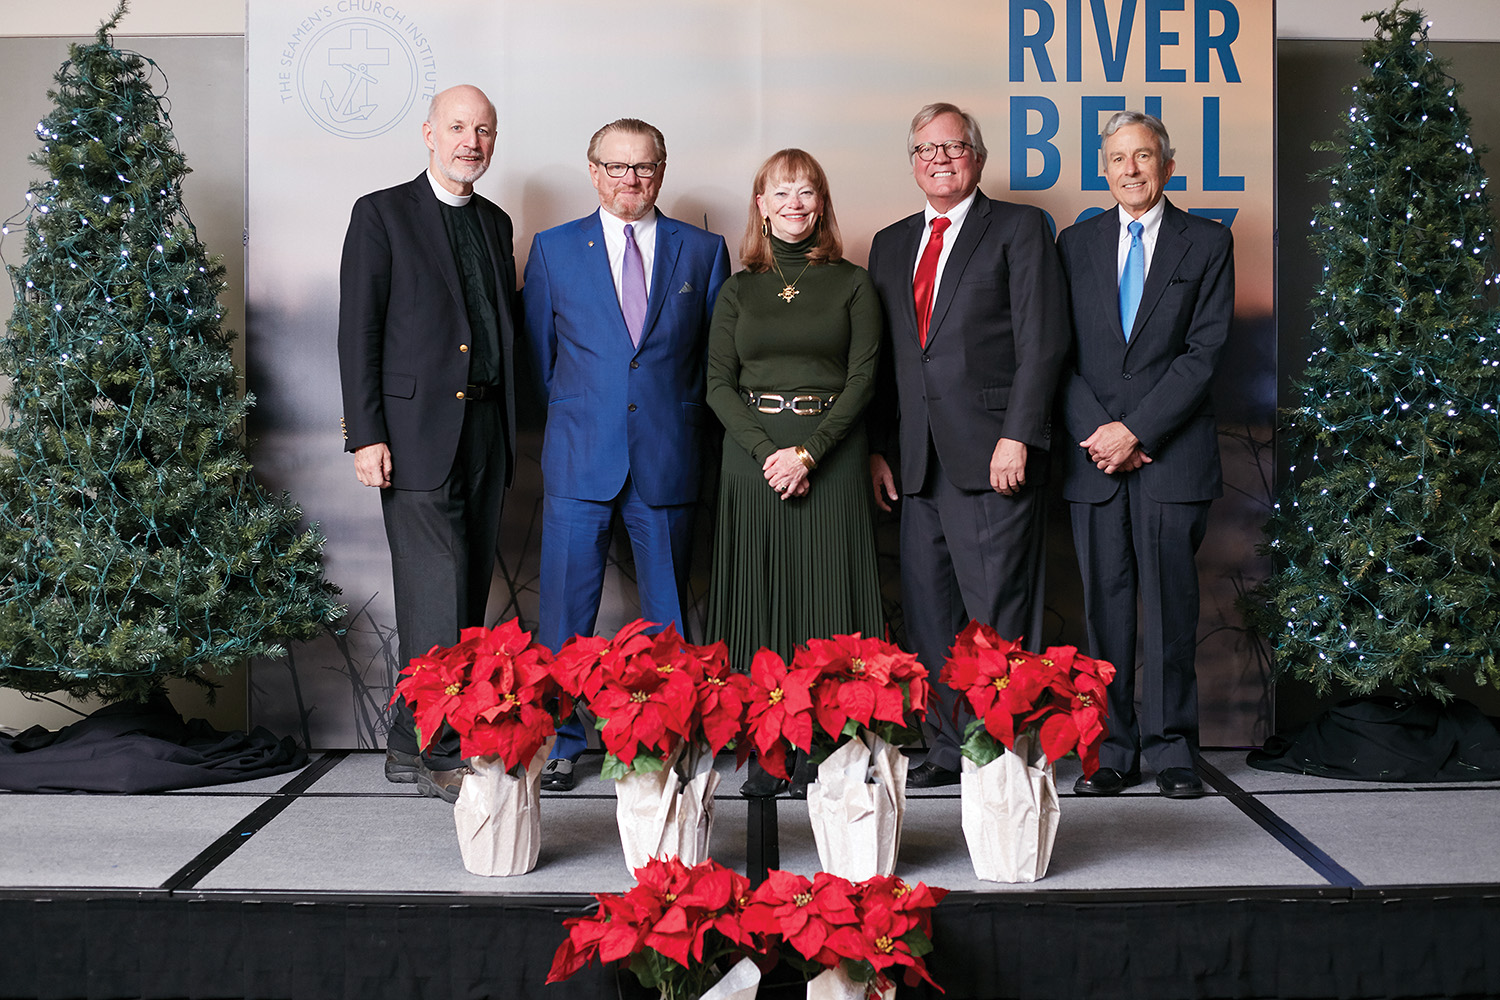 Farley, Felder, McGeorge Honored At River Bell Awards Luncheon